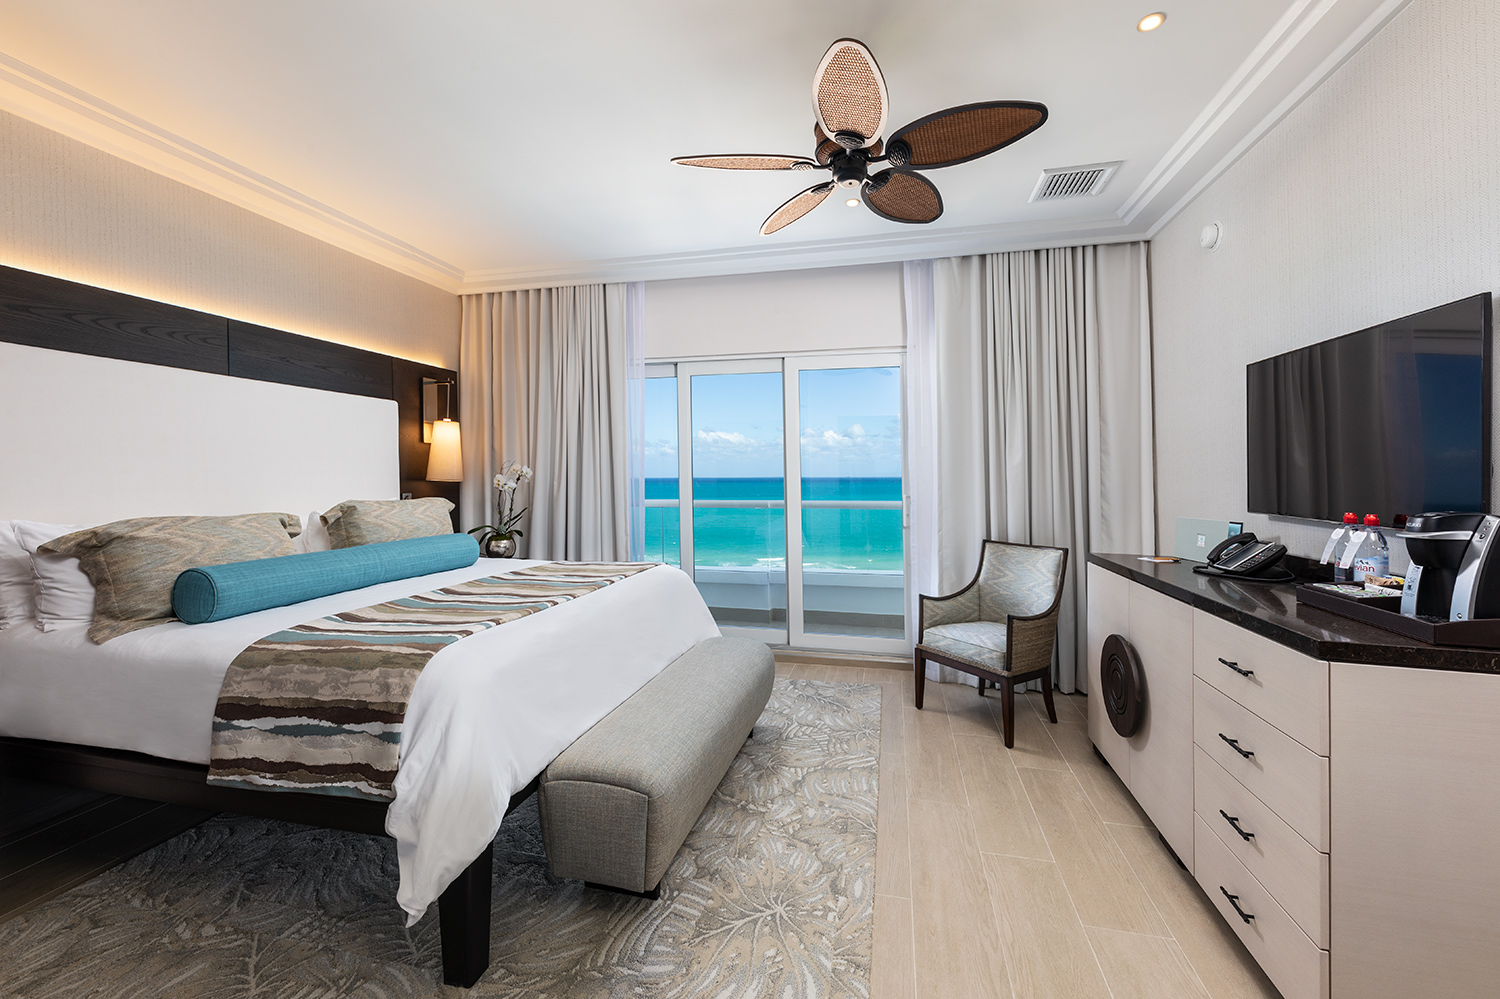 The-Palms-Hotel-March-2019-room-1202-05